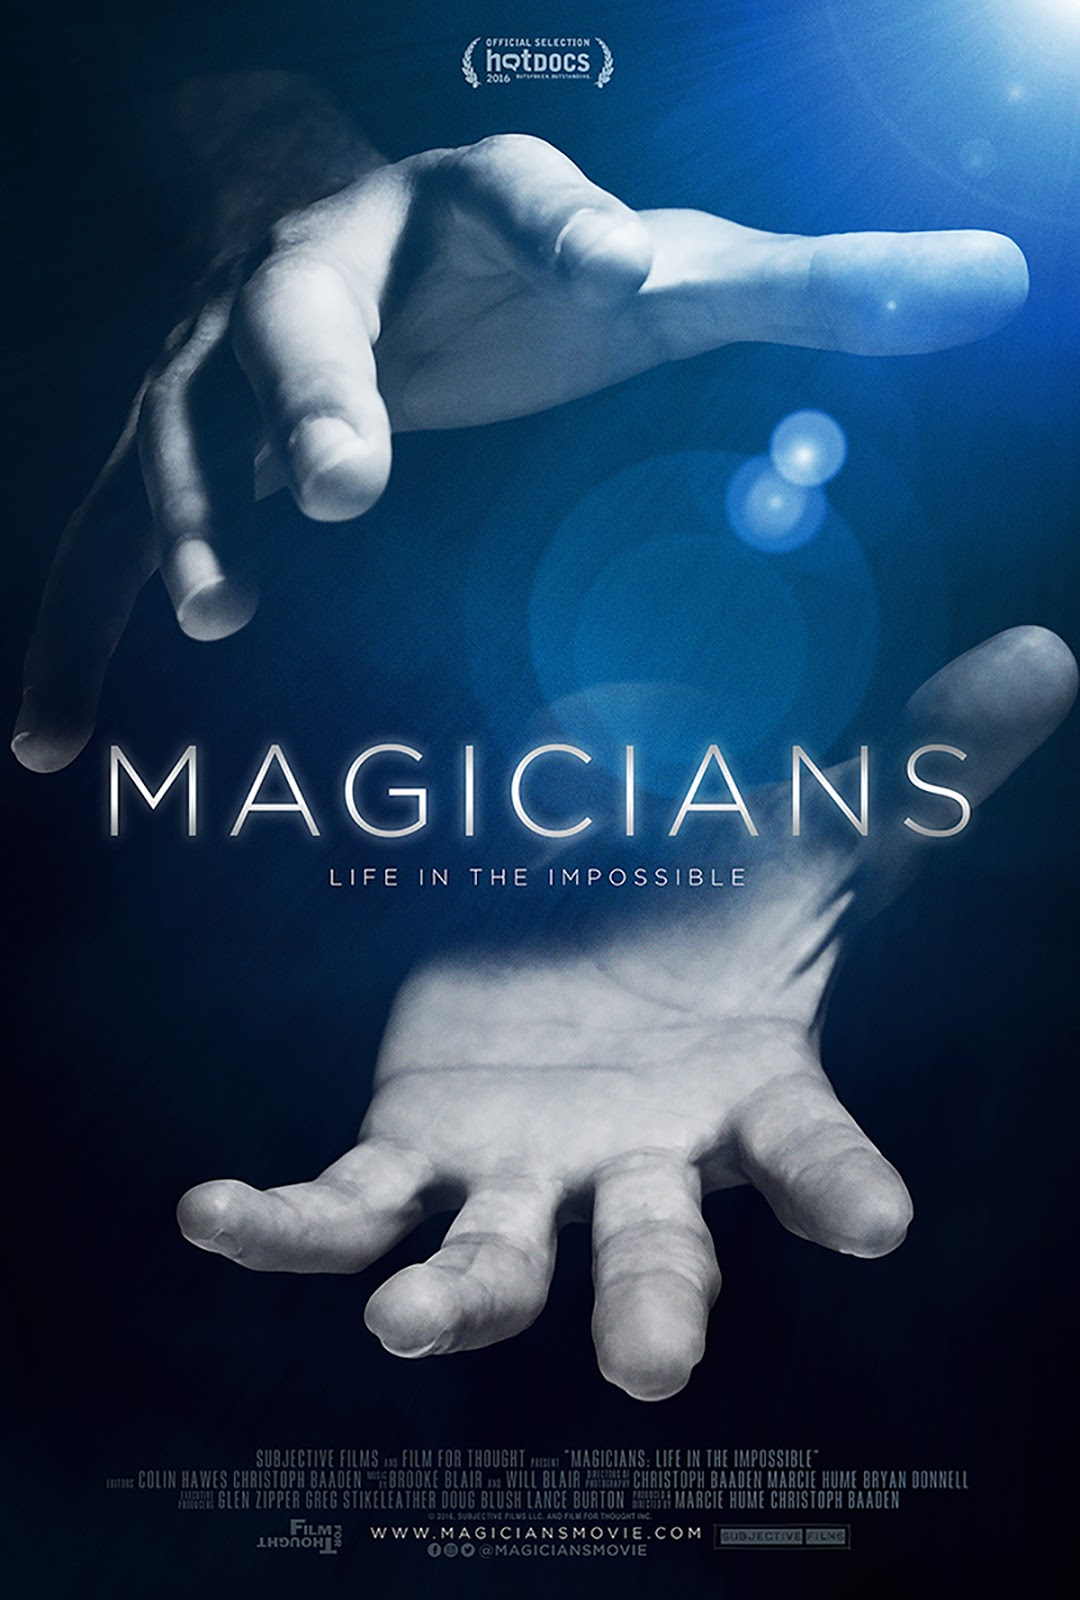 Magicians: Life in the Impossible (2016) ταινιες online seires xrysoi greek subs